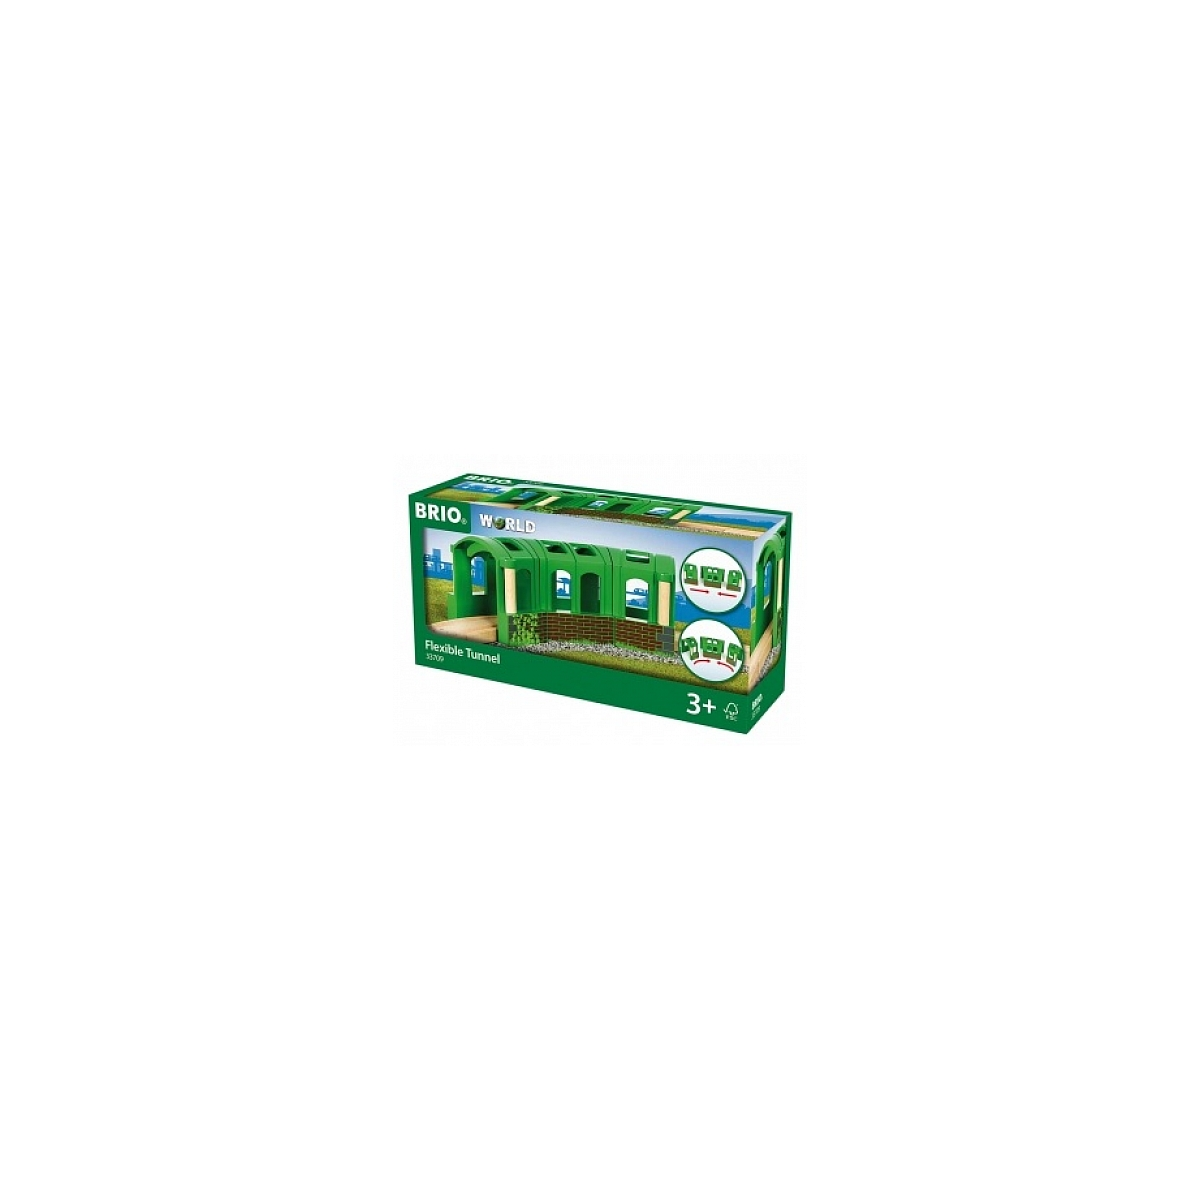 Brio - 33709 Tunnel Flexible